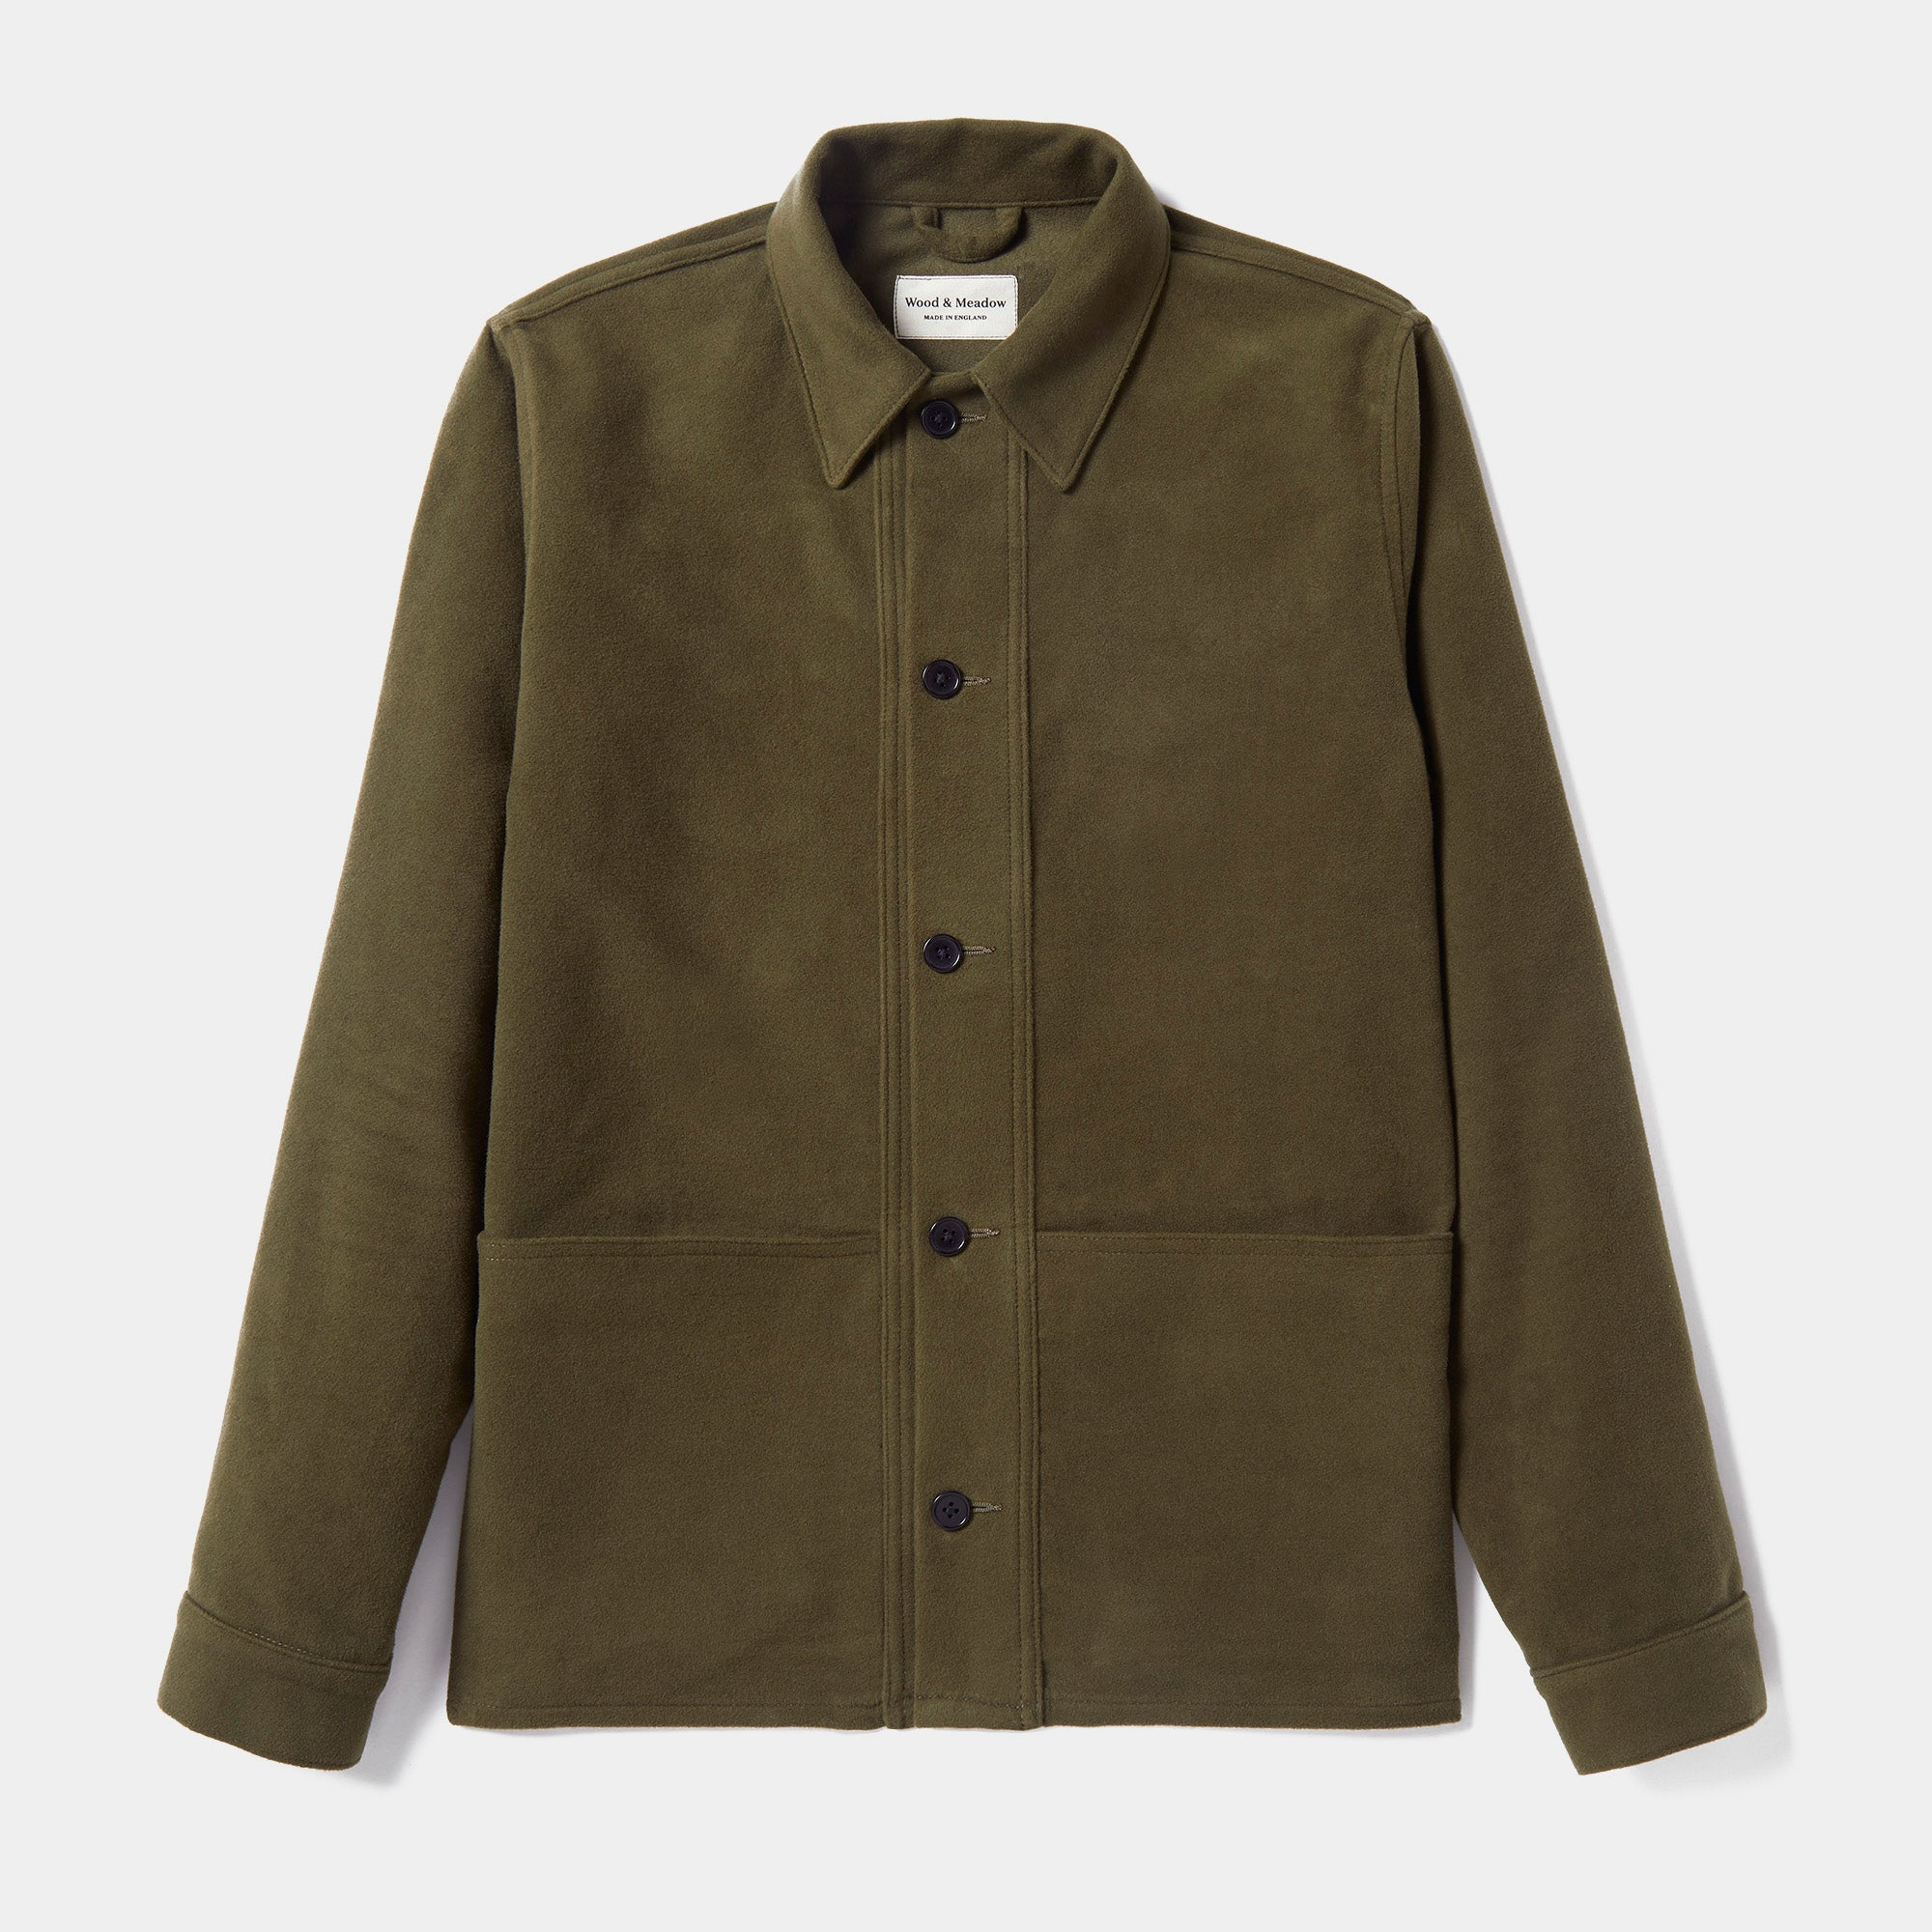 Wood & Meadow Work Jacket in Moss Moleskin